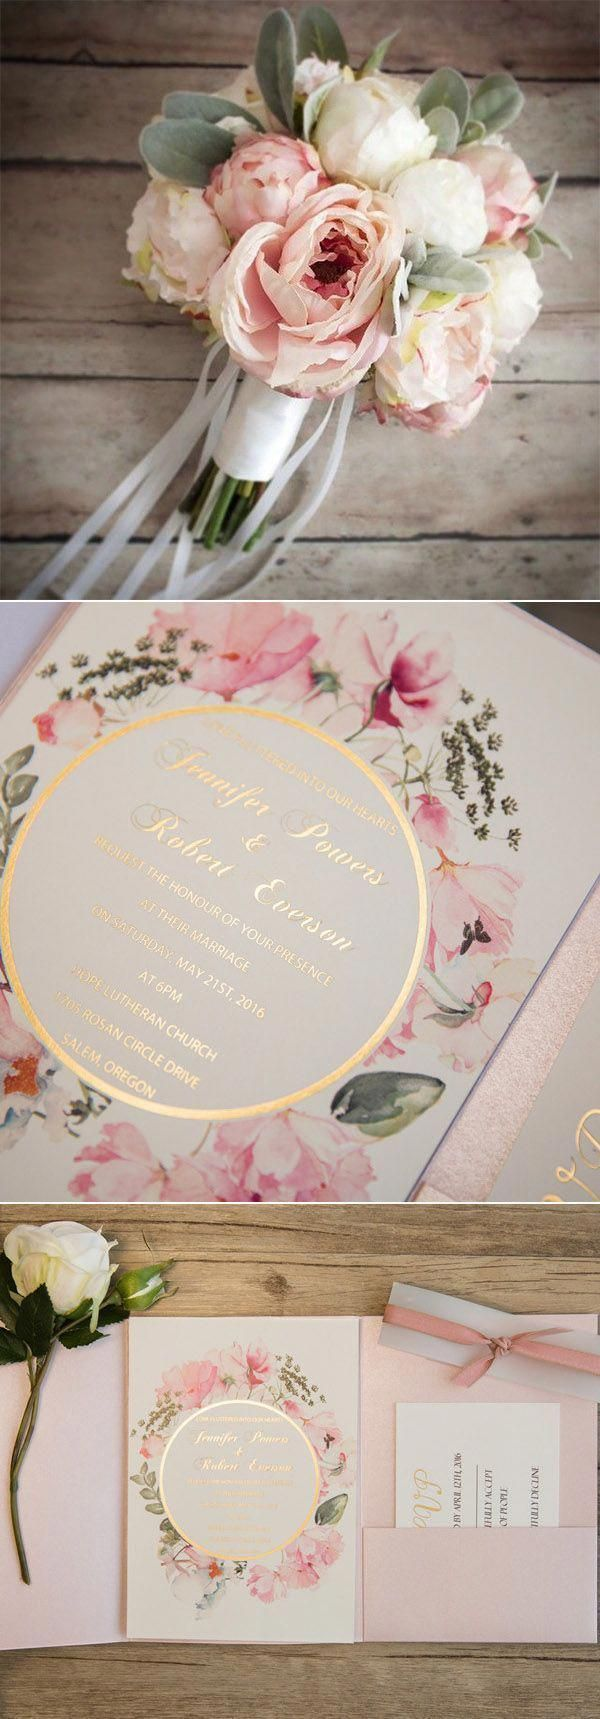 Wedding invitations with painted flowers and glittery wording are